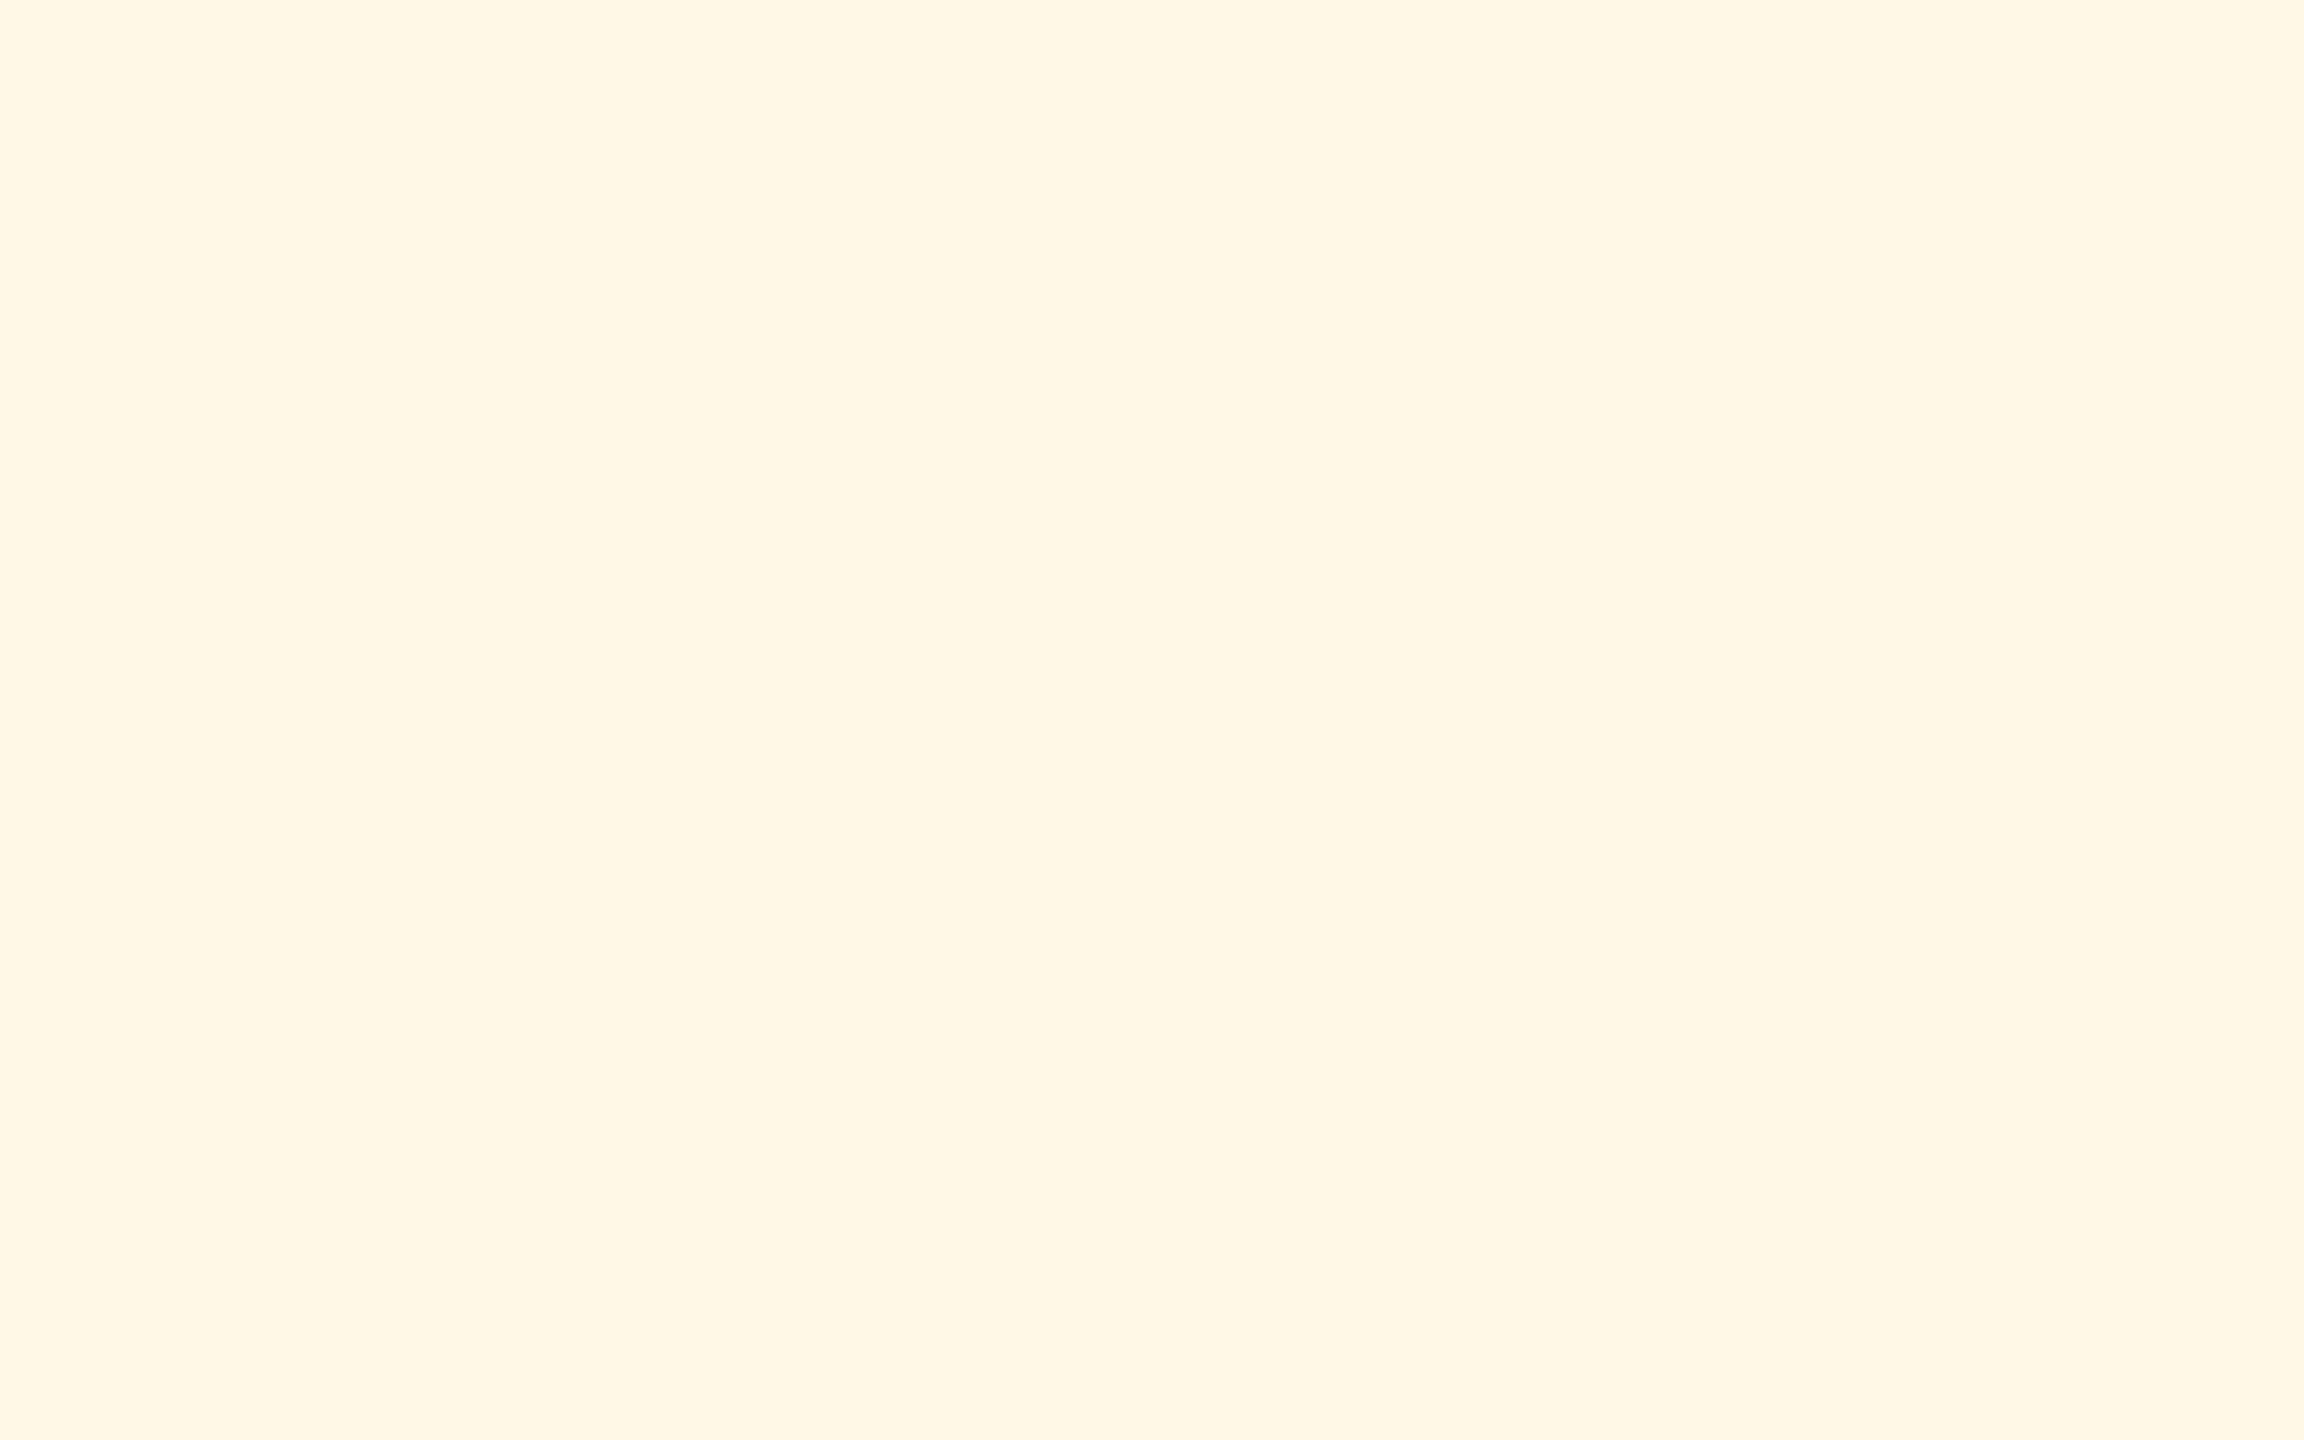 2304x1440 Cosmic Latte Solid Color Background